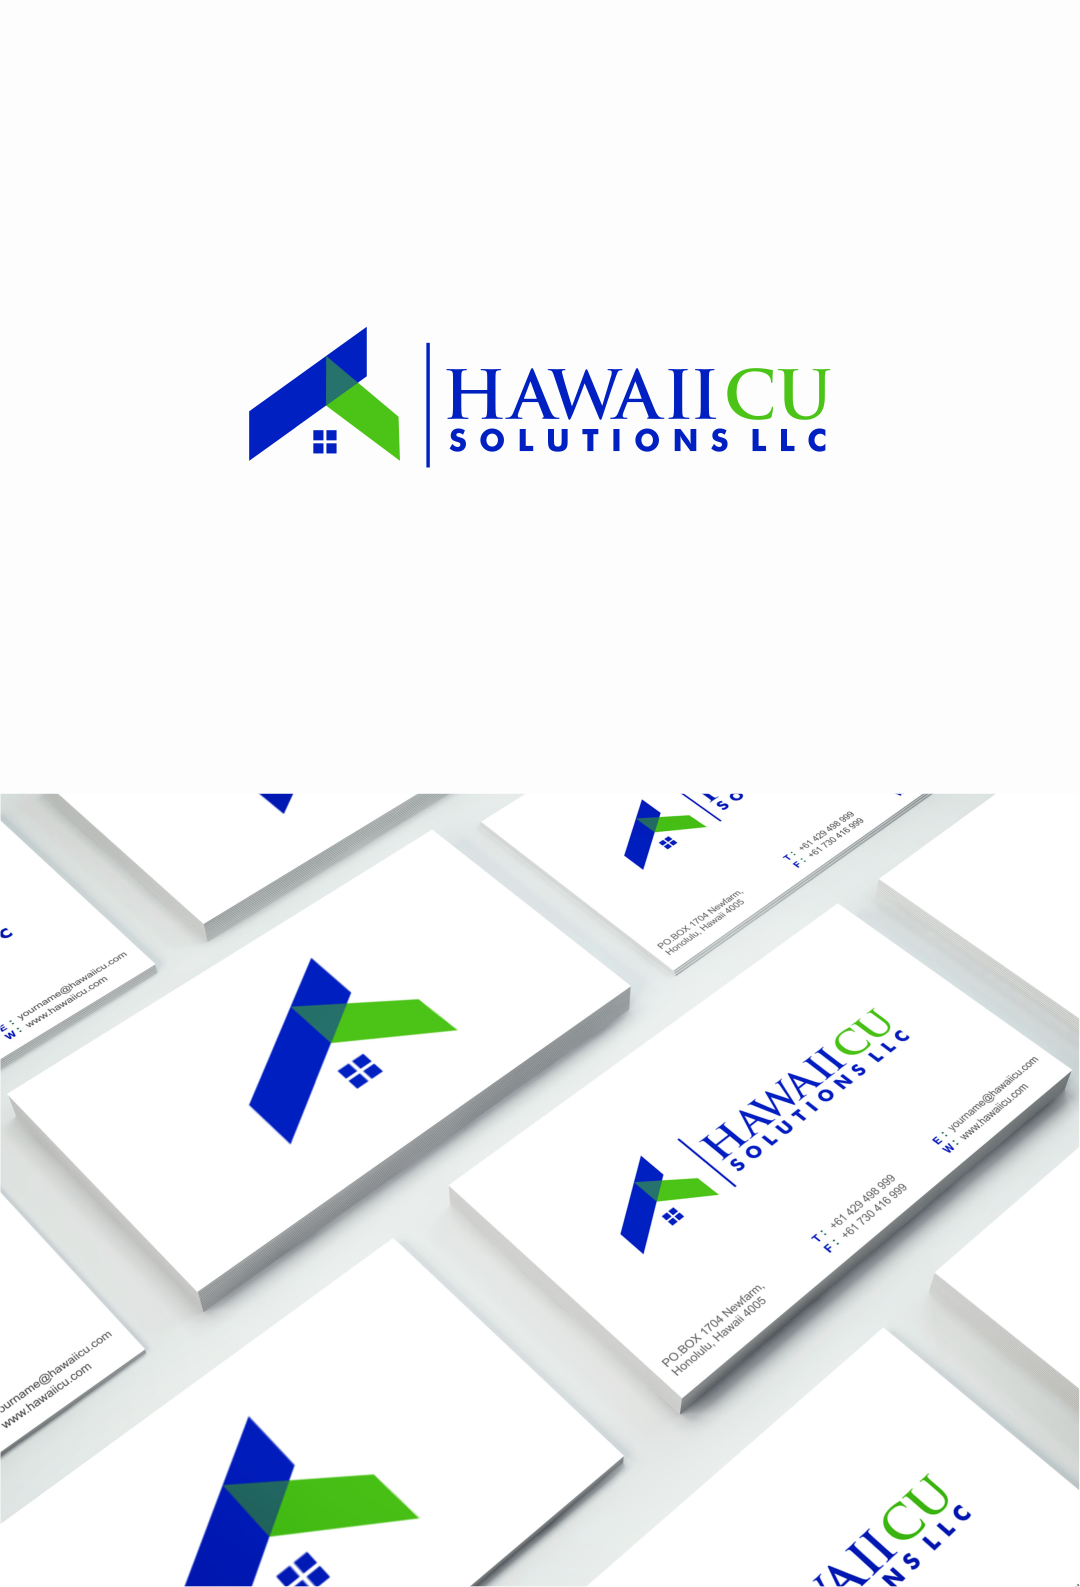 Logo design and business card by ditok my logo design and logo design and business card by ditok reheart Images